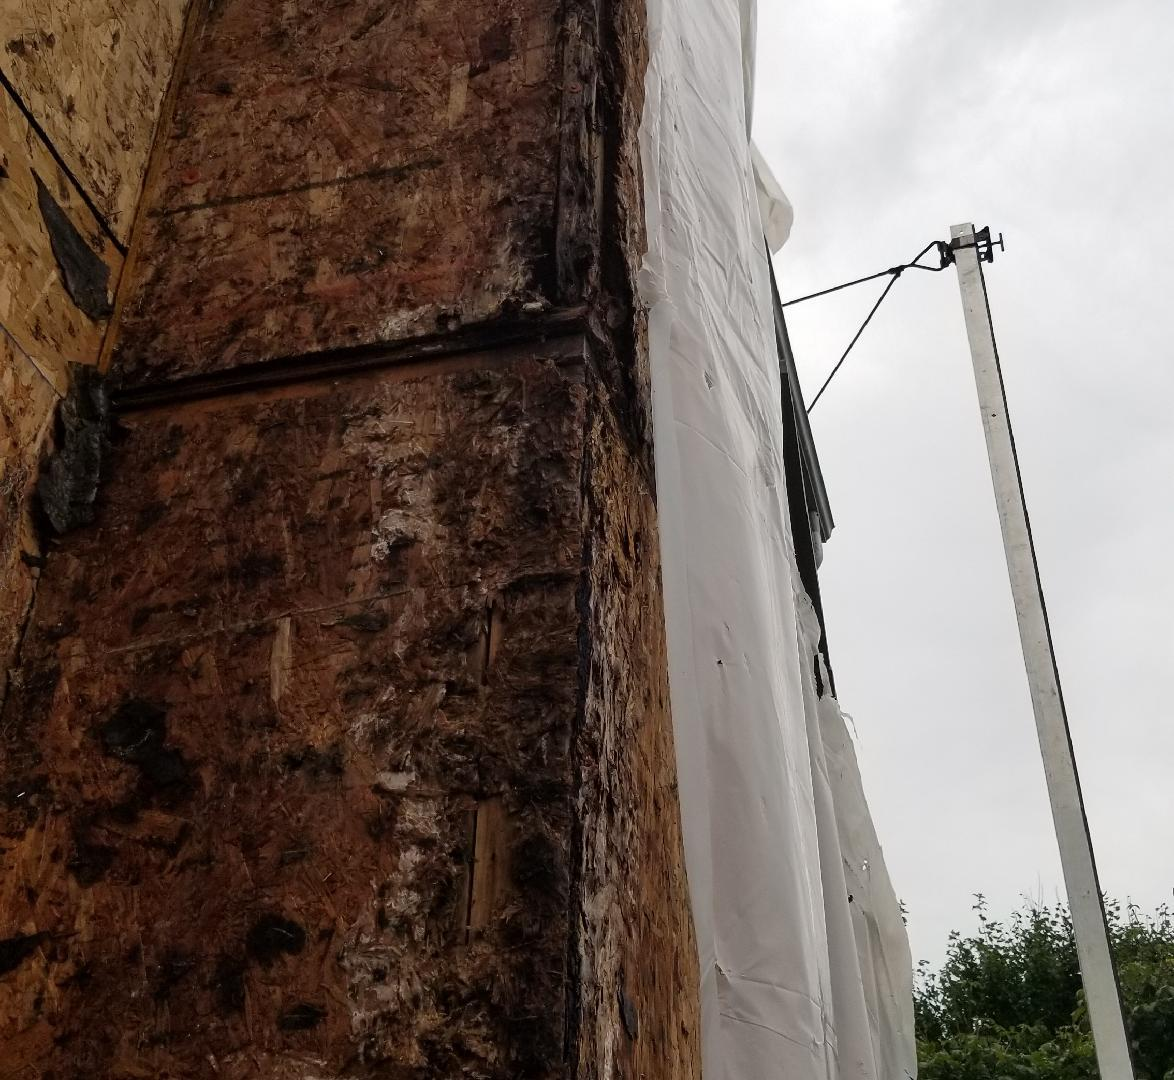 Rotted Wood Under Stucco Siding